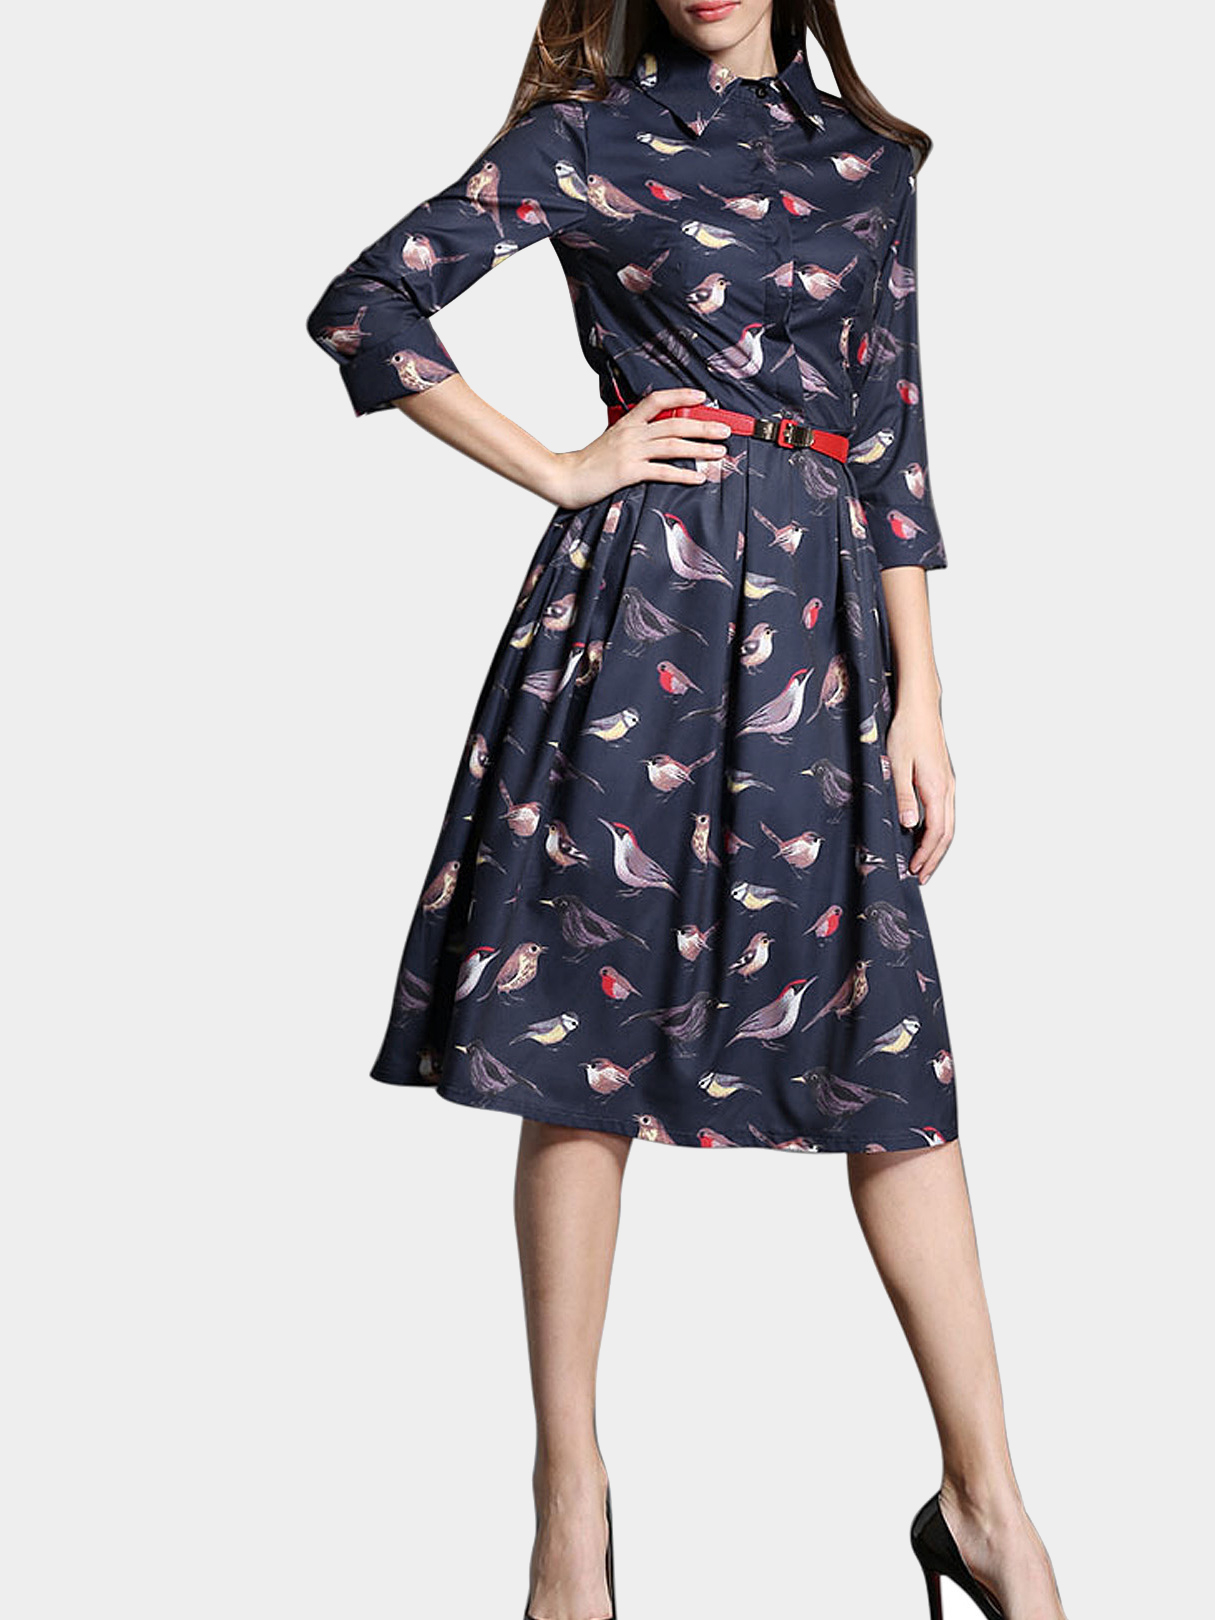 Royal Blue Bird Print Shirt Dress with Red Belt